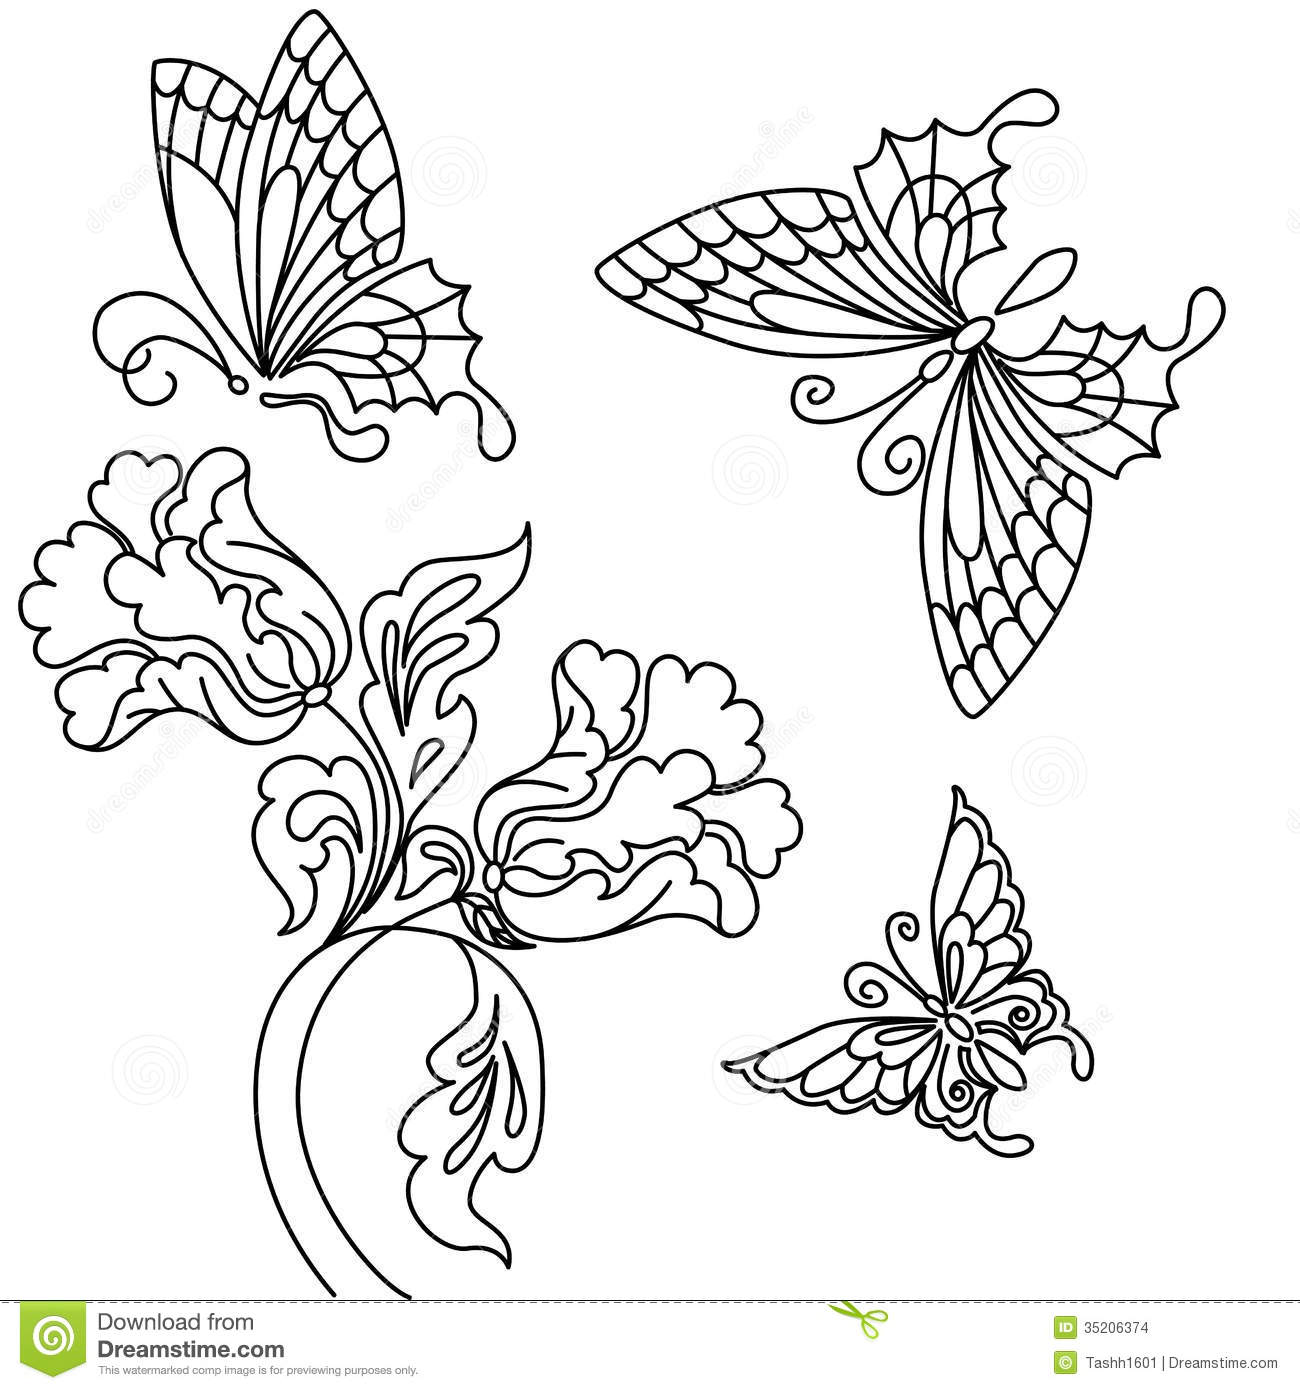 Flowers and butterfly stock illustration. Image of drawing ...